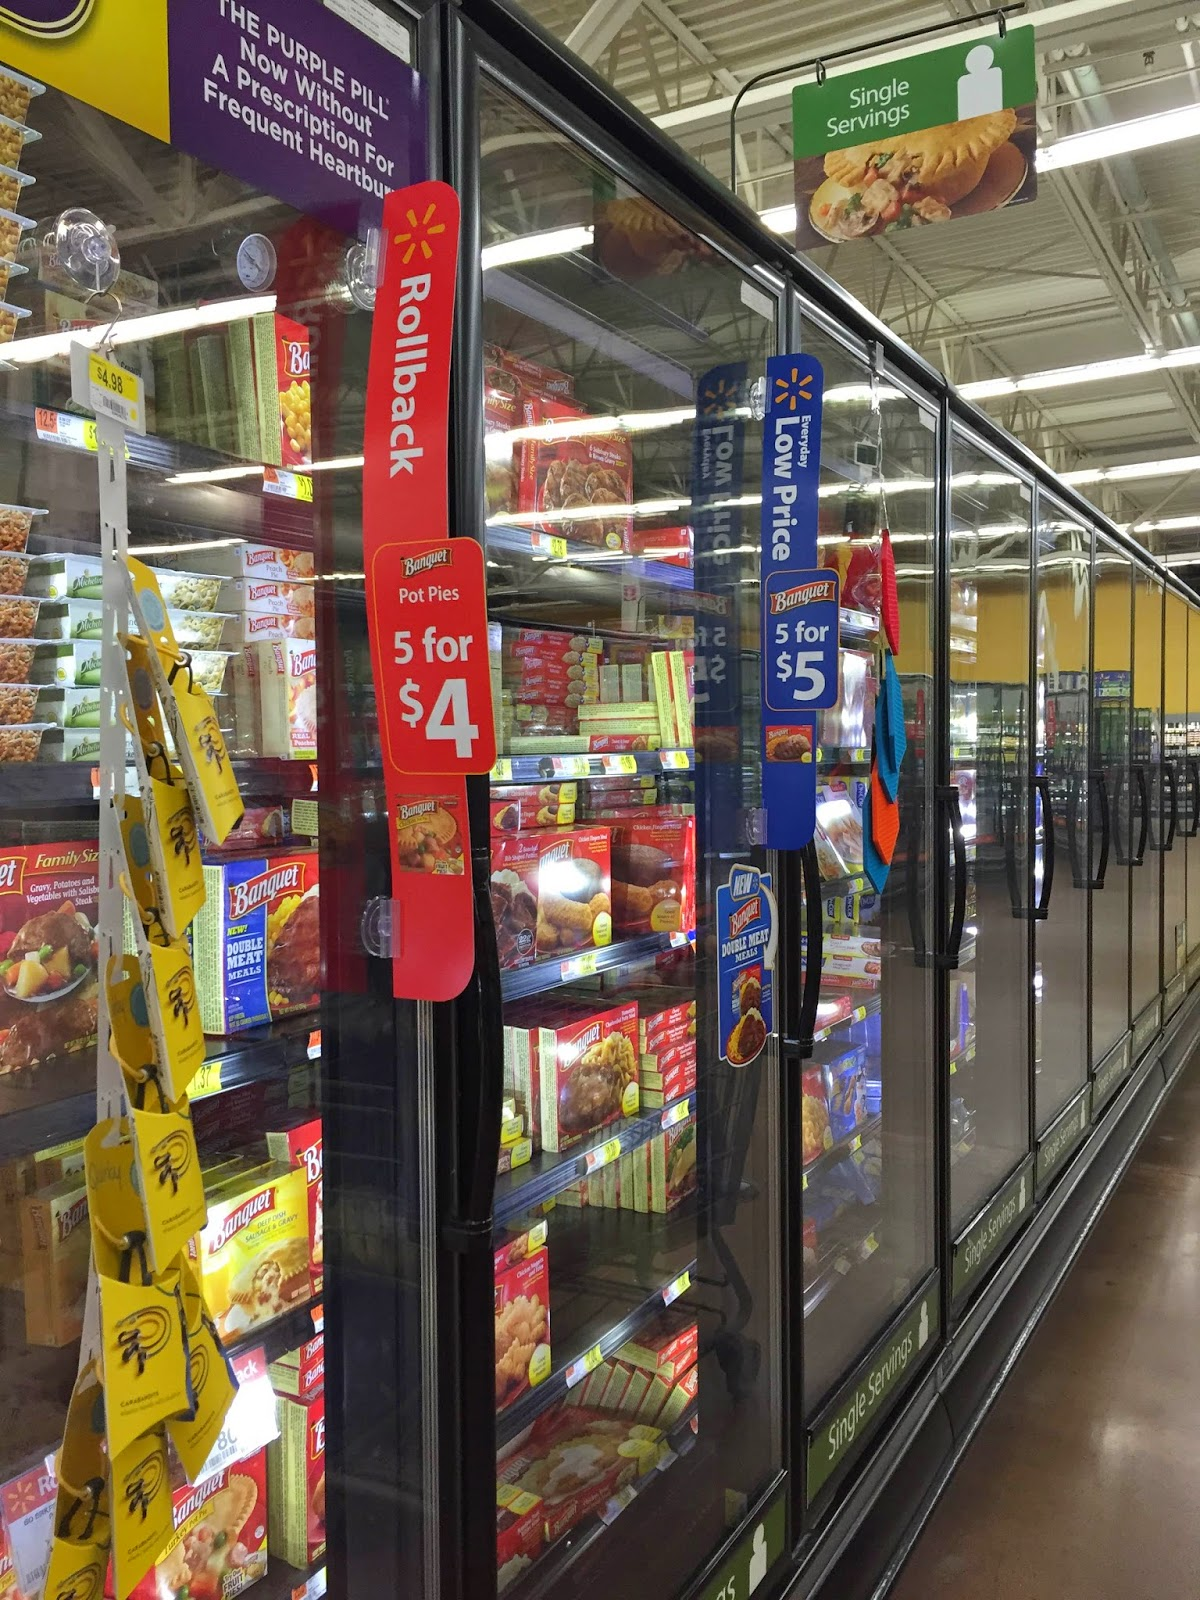 Rollback the Prices on Banquet and Chef Boyardee at Walmart